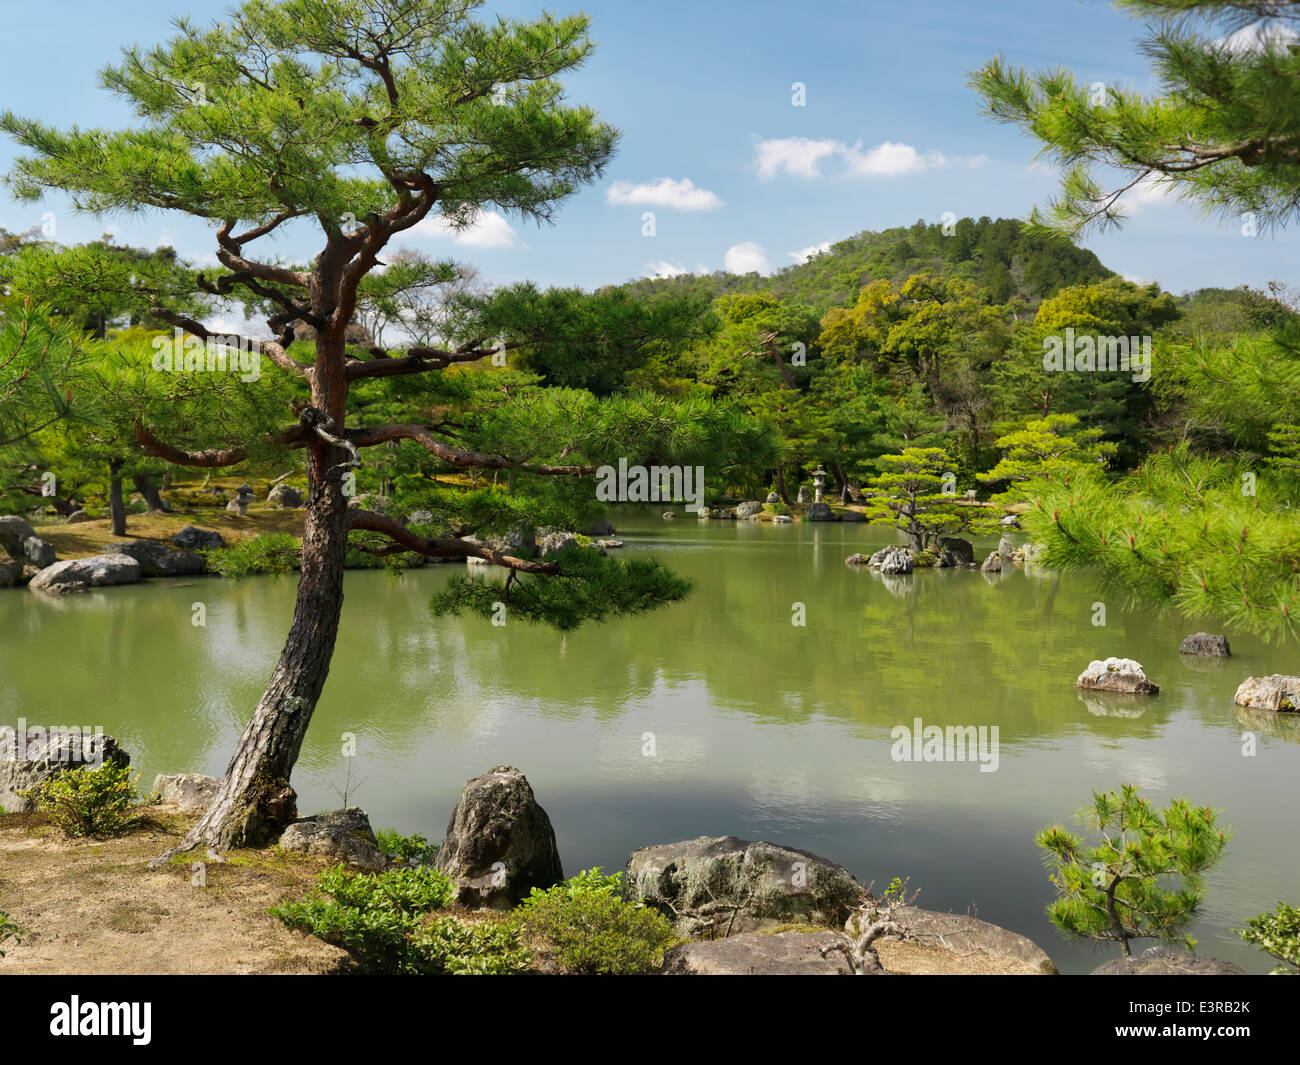 Pine trees at Japanese garden with a pond in Kyoto, Japan - Stock Image